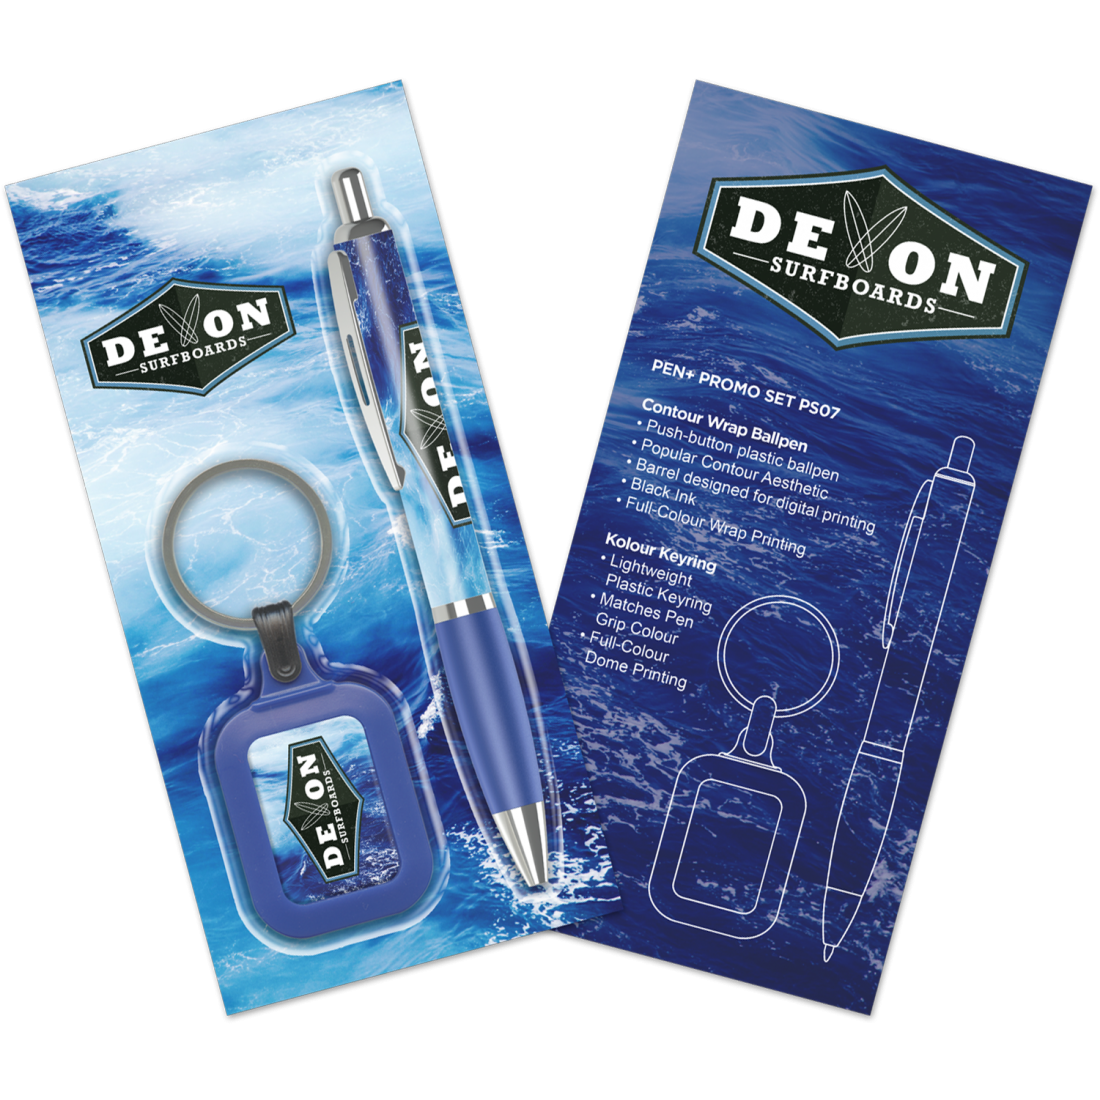 PS07 Pen+ Promo Set